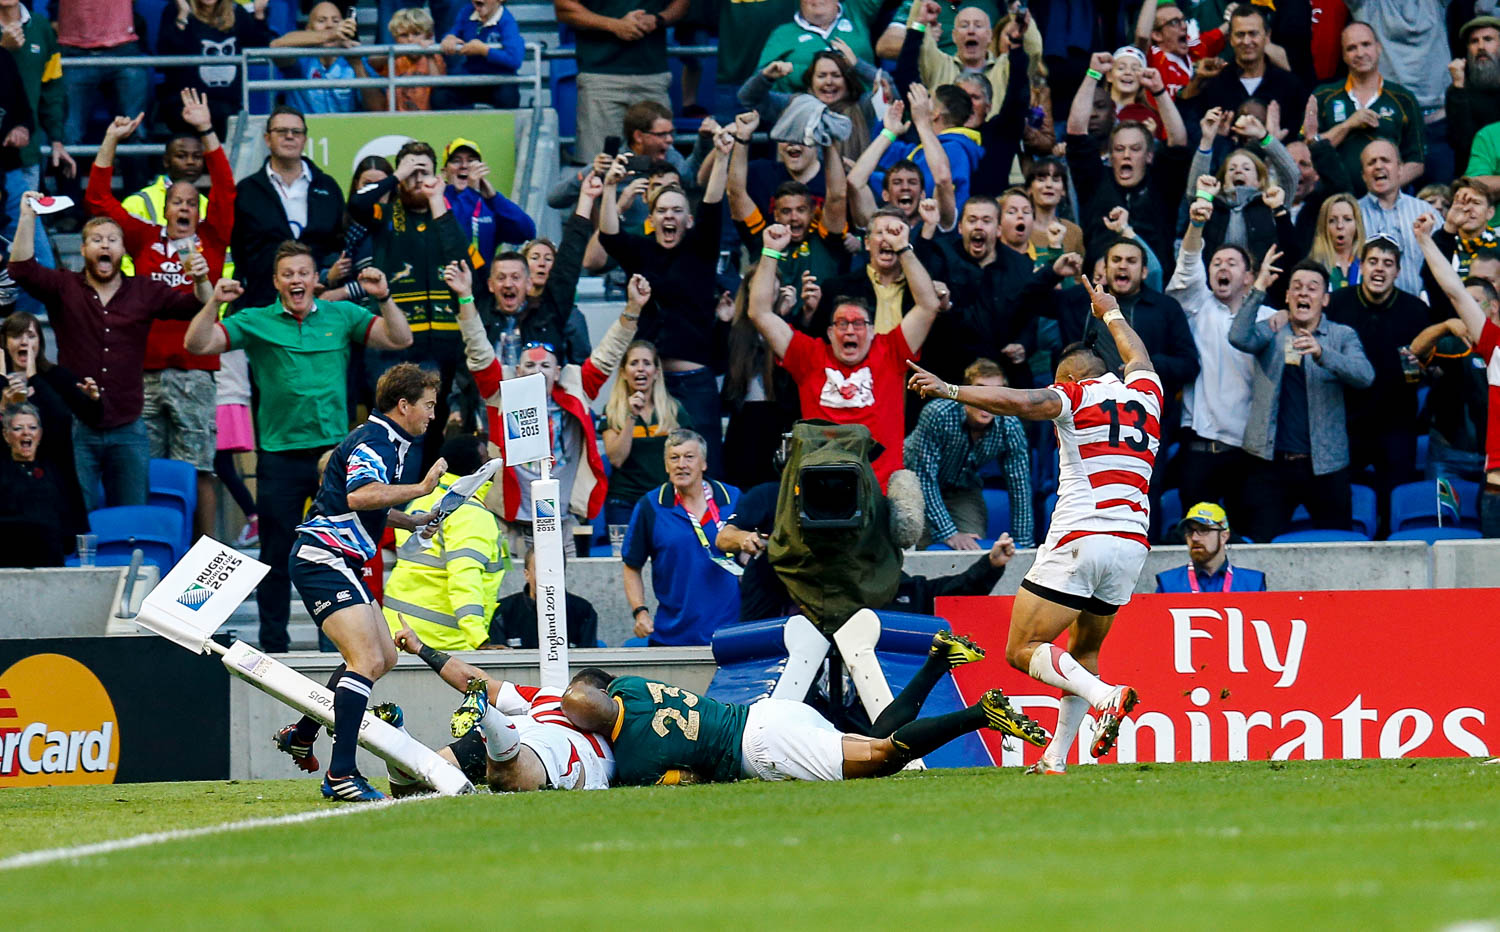 Rugby World Cup, England 2015 - Japan score the final try to notch up an historic victory against South Africa. Rugby World Cup group game from Pool B between South Africa and Japan. at Brighton Community Stadium. (c) Matt Bristow | SportPix.org.uk